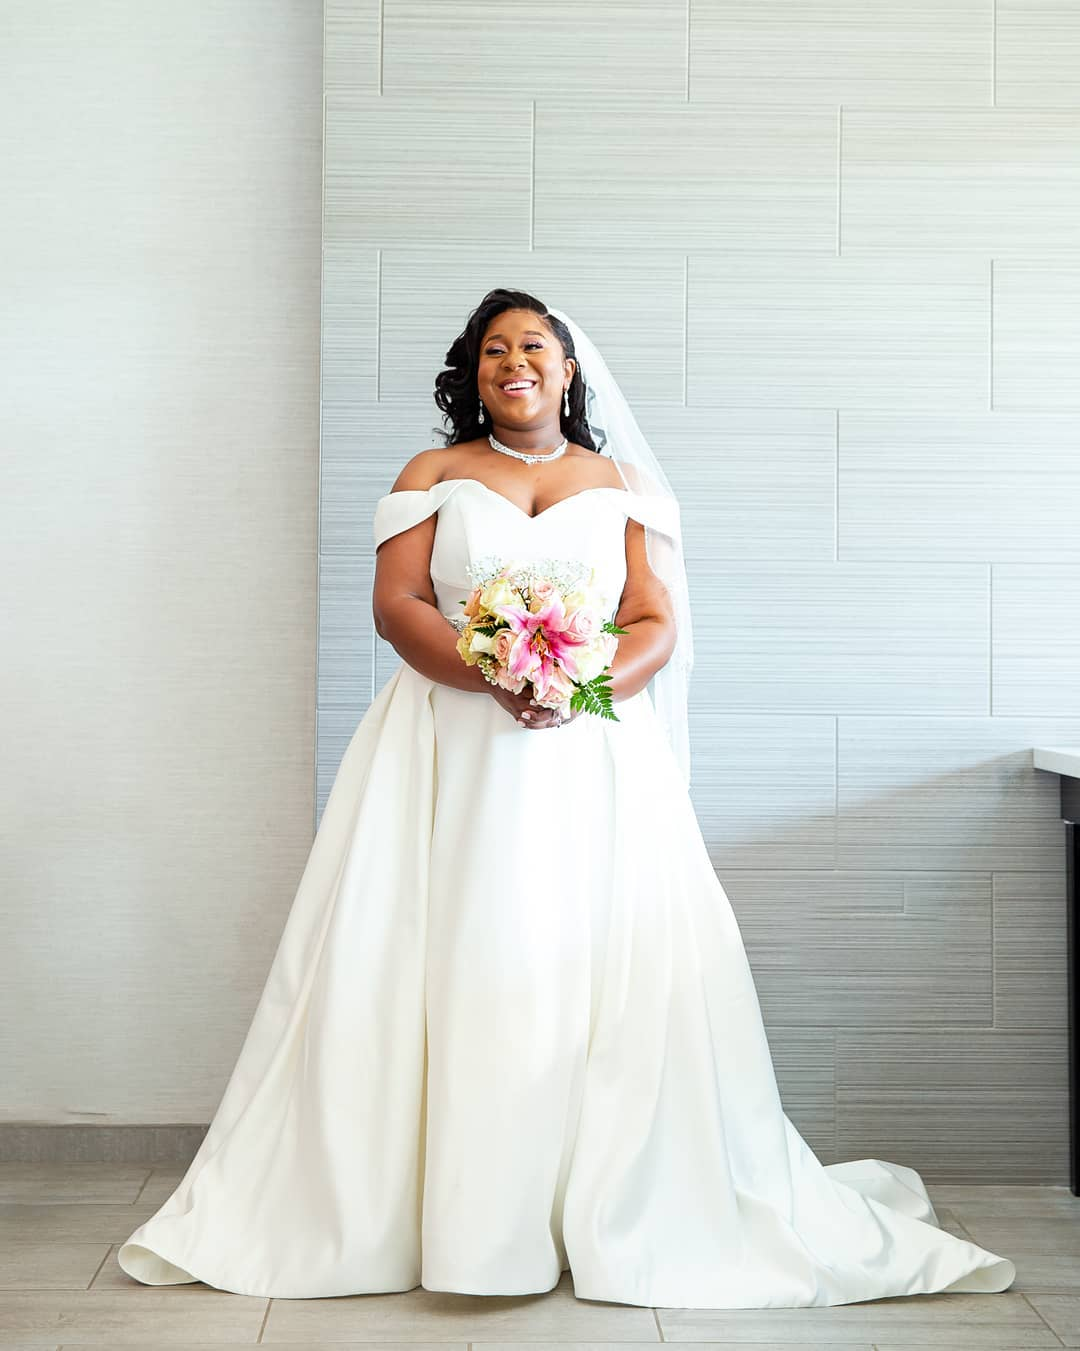 bride wearing an off-the-shoulder satin ball gown